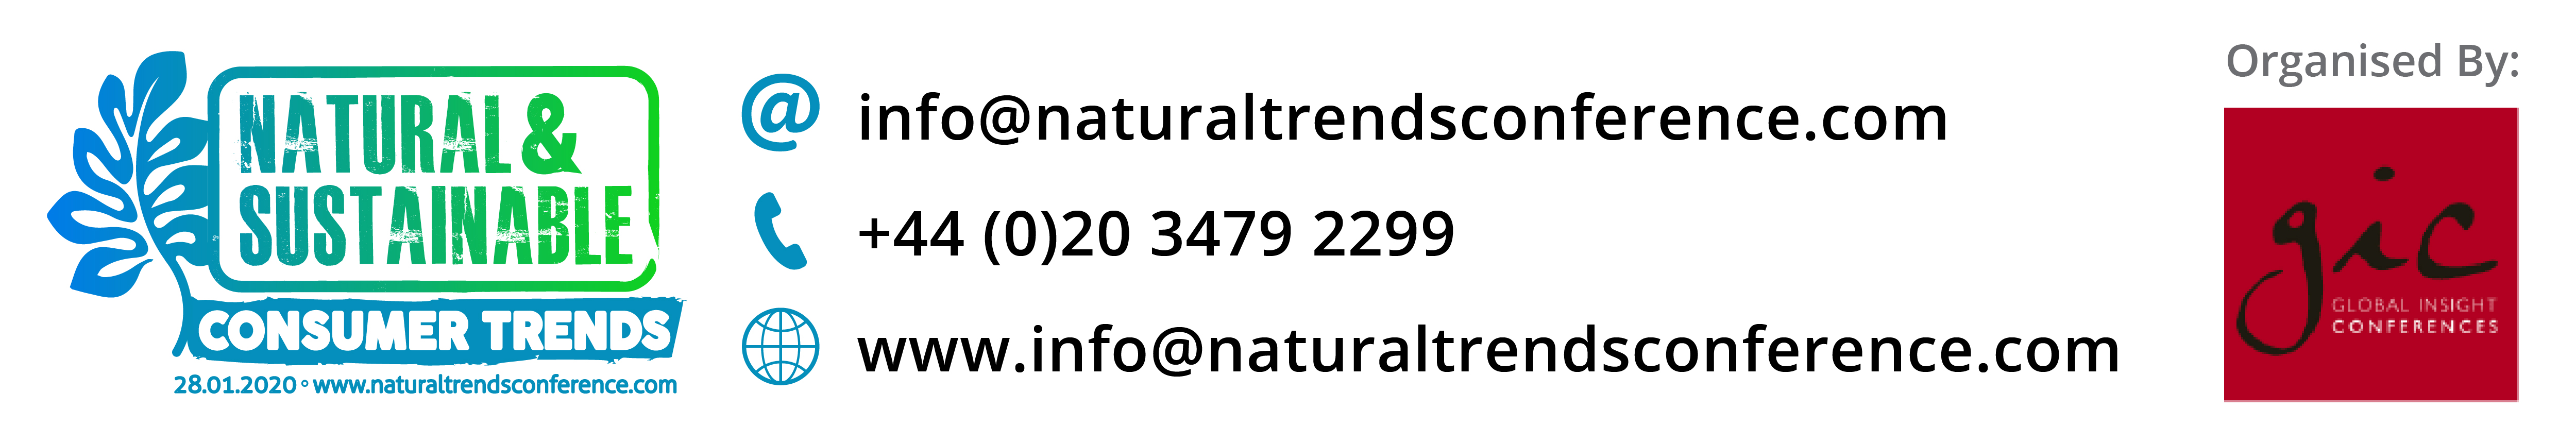 Natural Trends Conference